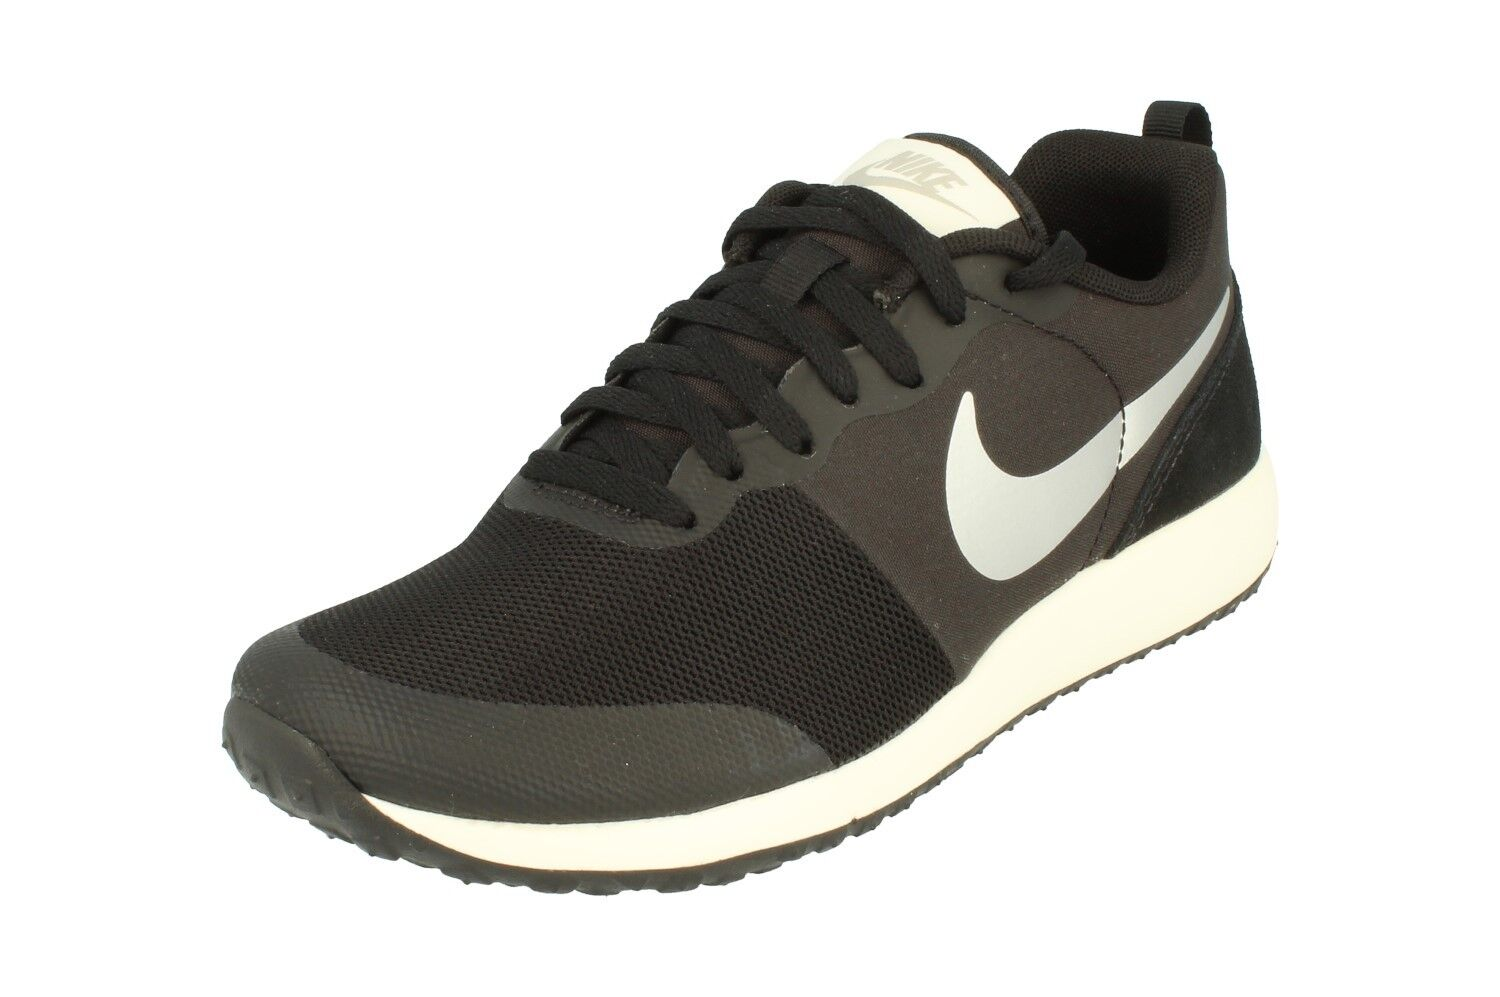 Nike Trainers Wo Hommes Elite Shinsen Trainers Nike 801781 Baskets Chaussures 001 036e3c